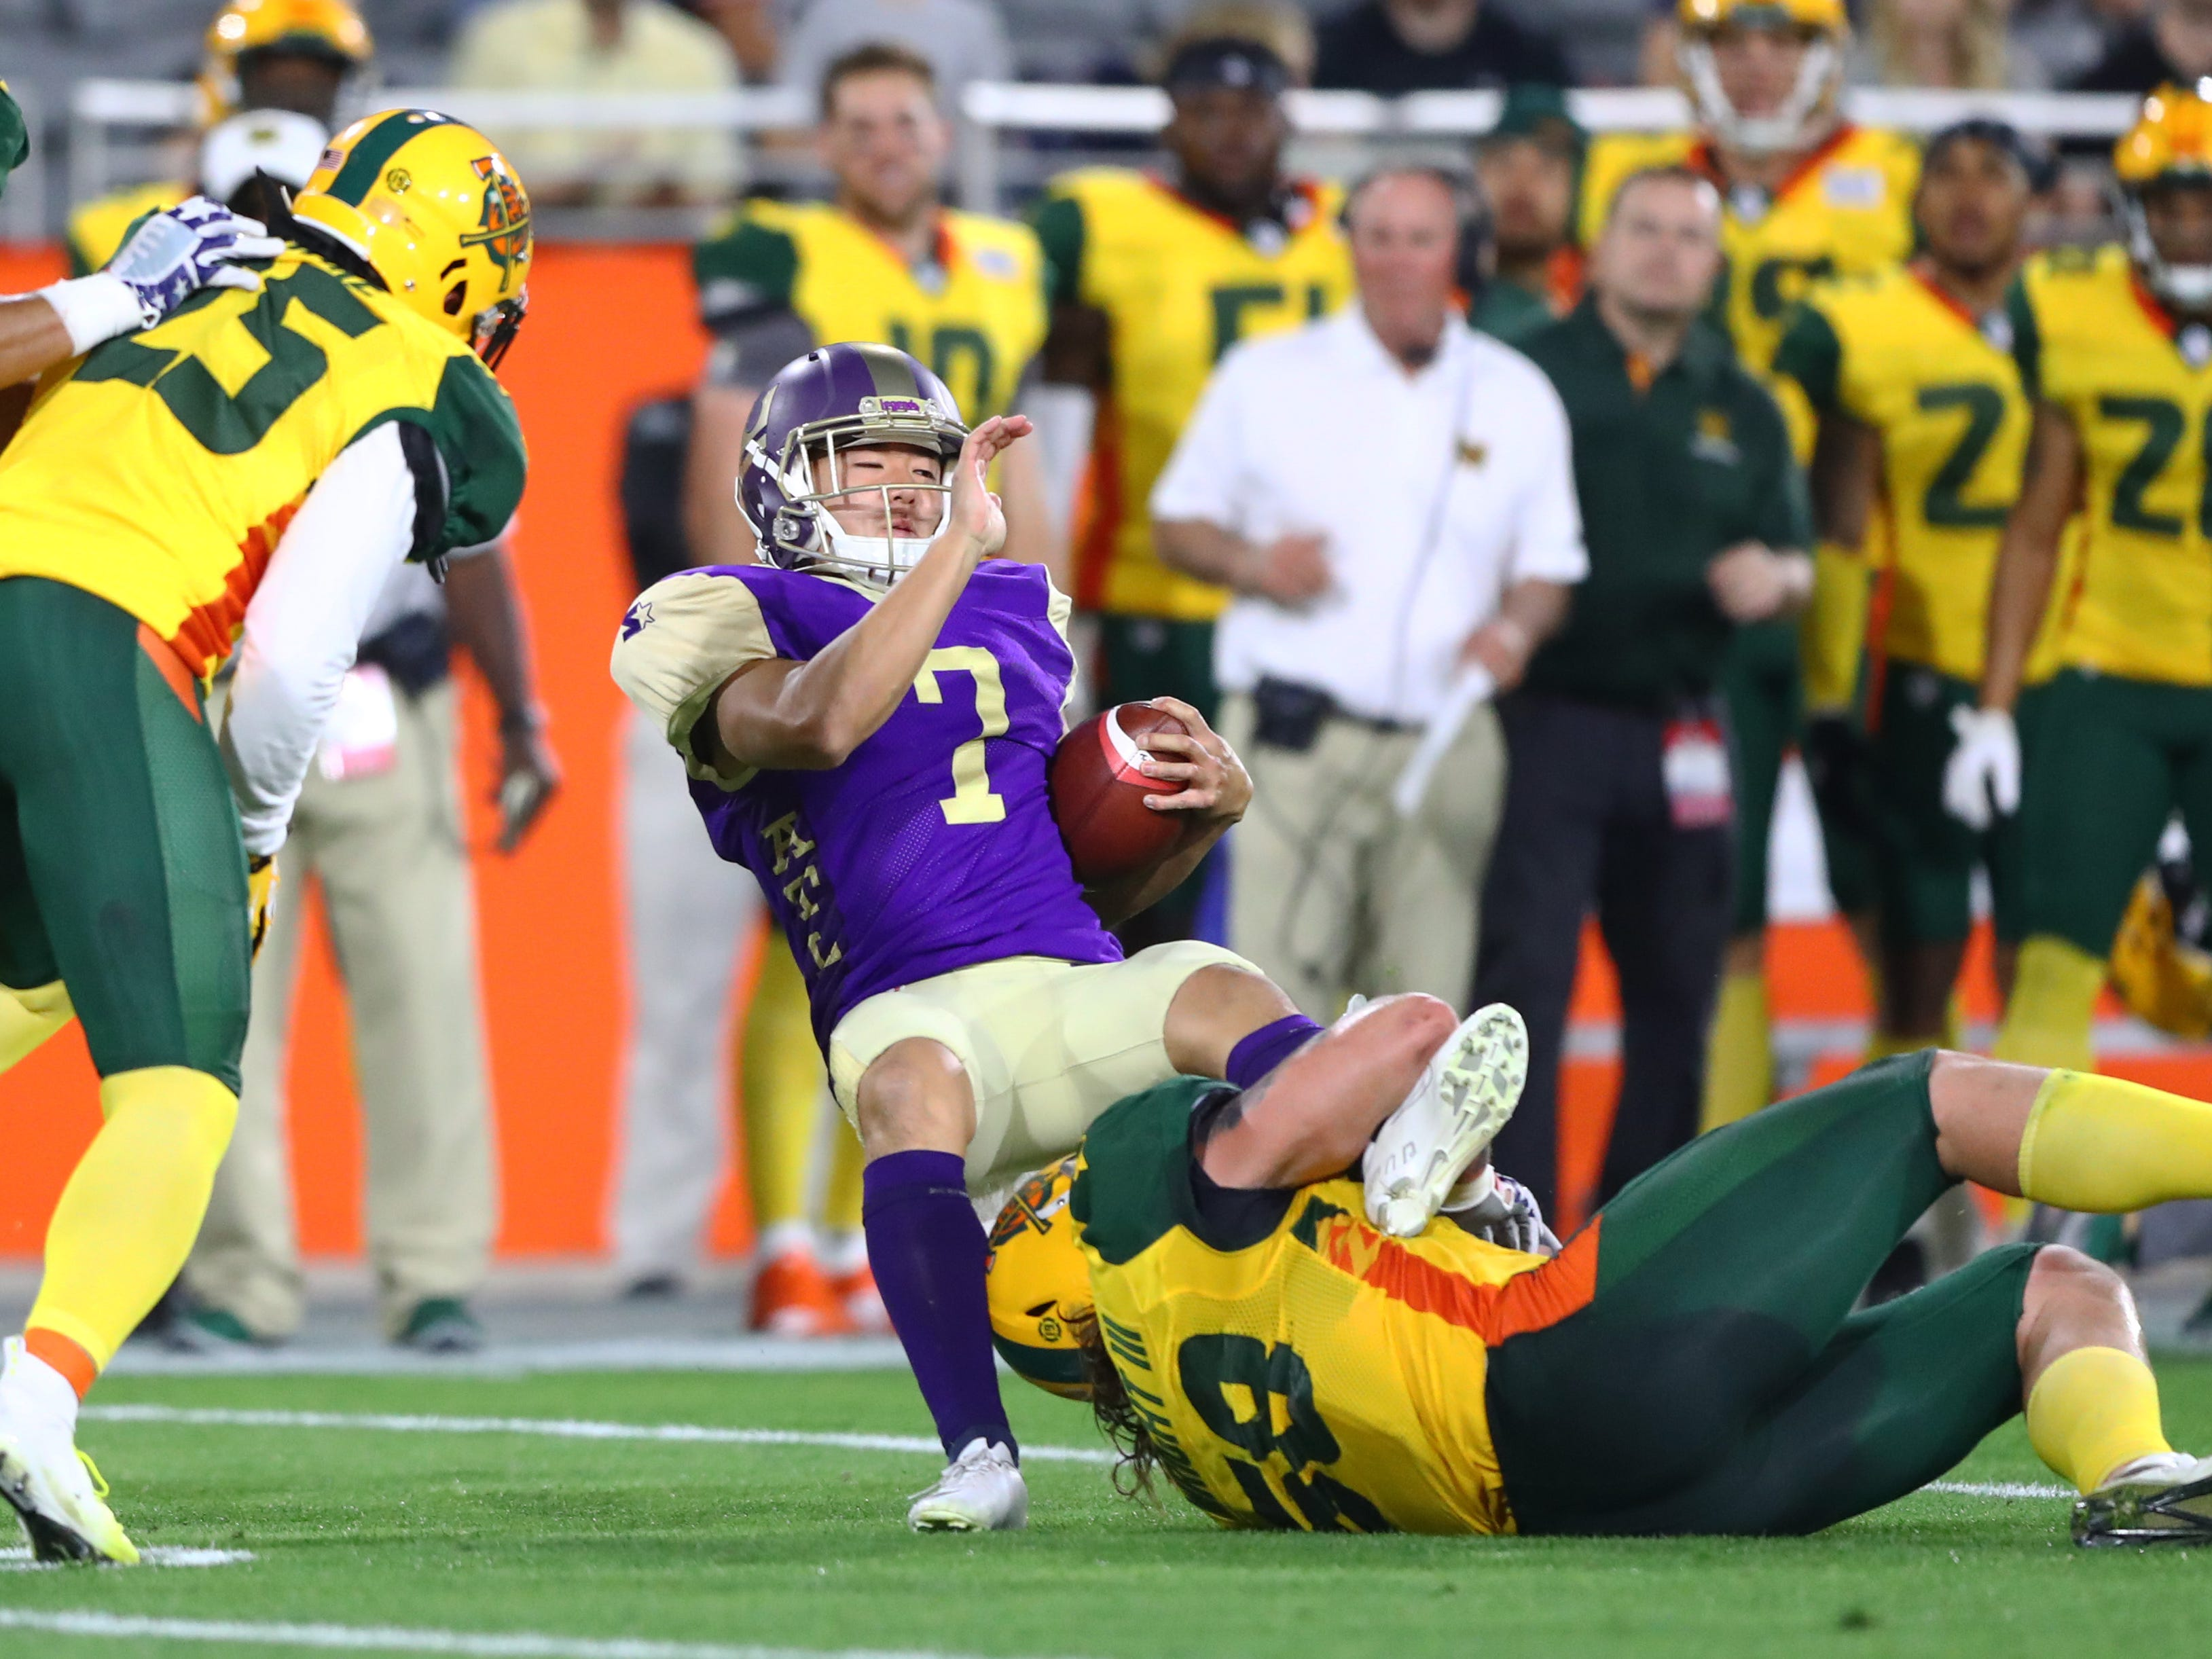 Mar 3, 2019; Tempe, AZ, USA; Atlanta Legends kicker Younghoe Koo (7) is tackled by Arizona Hotshots linebacker Scooby Wright III during the first half of an AAF football game at Sun Devil Stadium.